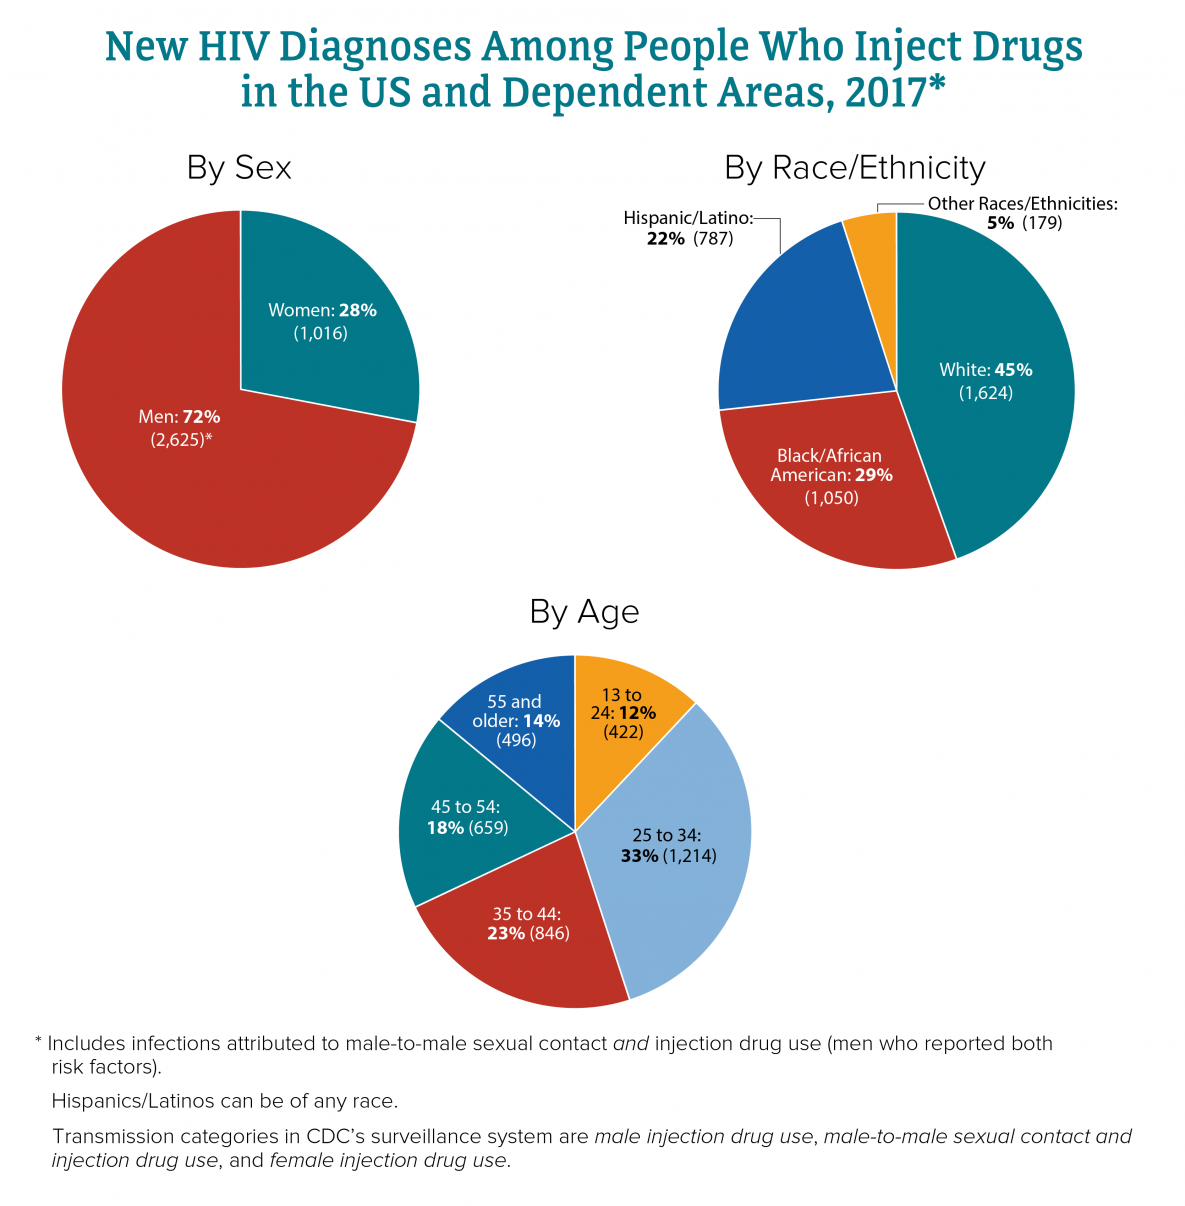 This image shows the number of new HIV diagnoses in the United States and dependent areas among people who inject drugs by sex, race/ethnicity, and age in 2017. By sex, Women = 1,016; Men = 2,625. By race/ethnicity, White = 1,624; Black/African American = 1,050; Hispanic/Latino = 787; other races/ethnicities = 179. By age, 13 to 24 = 422; 25 to 34 = 1,214; 35 to 44 = 846; 45 to 54 = 659; 55 and older = 496.